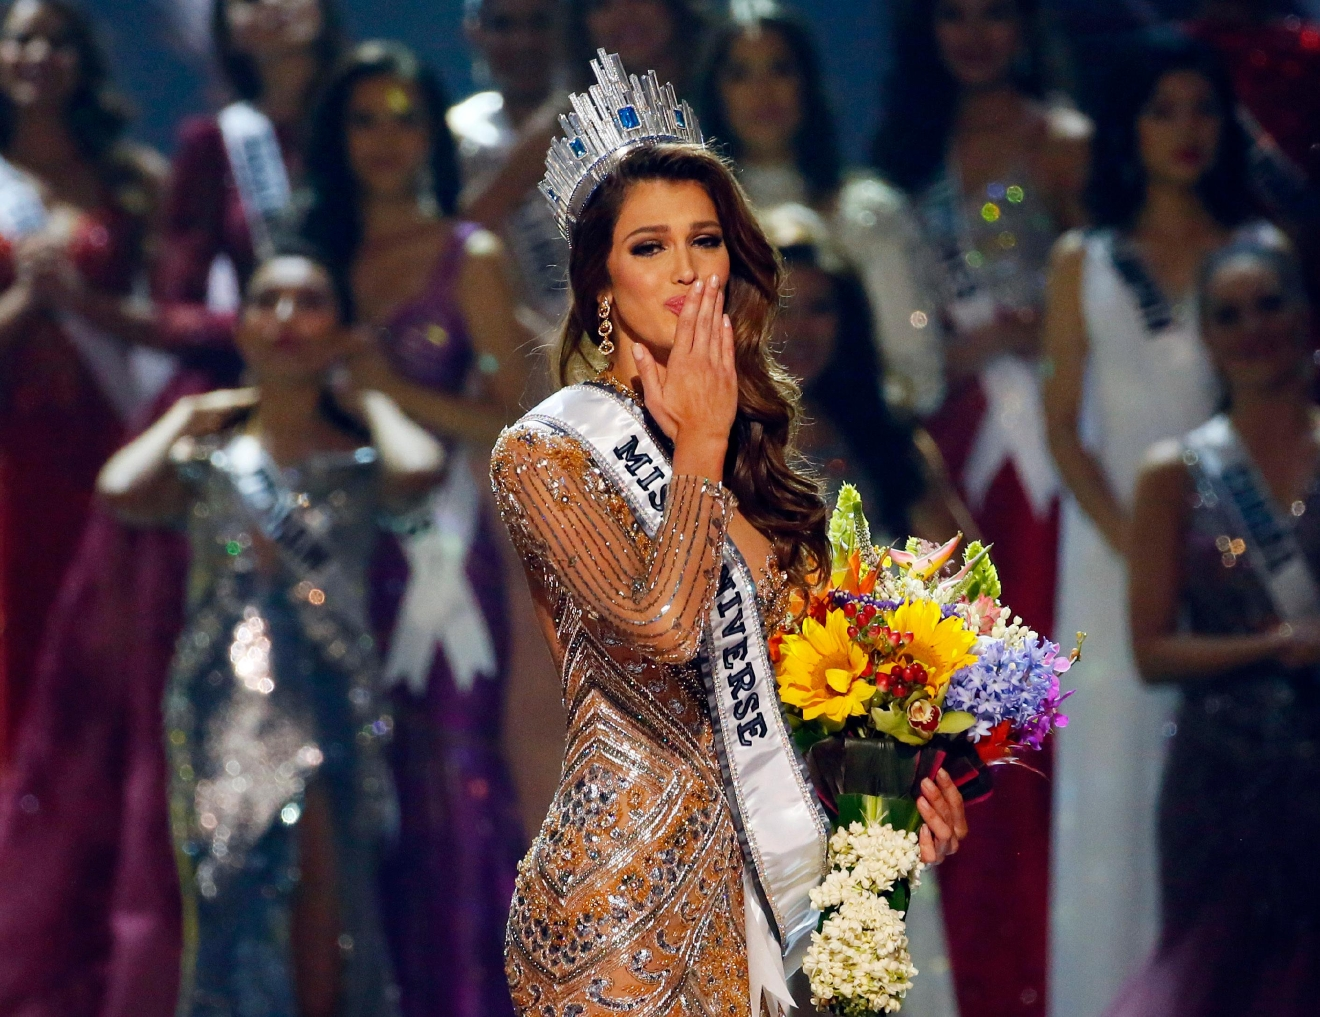 Iris Mittenaere of France blows kisses to the crowd after being proclaimed the Miss Universe 2016 in coronation Monday, Jan. 30, 2017, at the Mall of Asia in suburban Pasay city, south of Manila, Philippines. (AP Photo/Bullit Marquez)